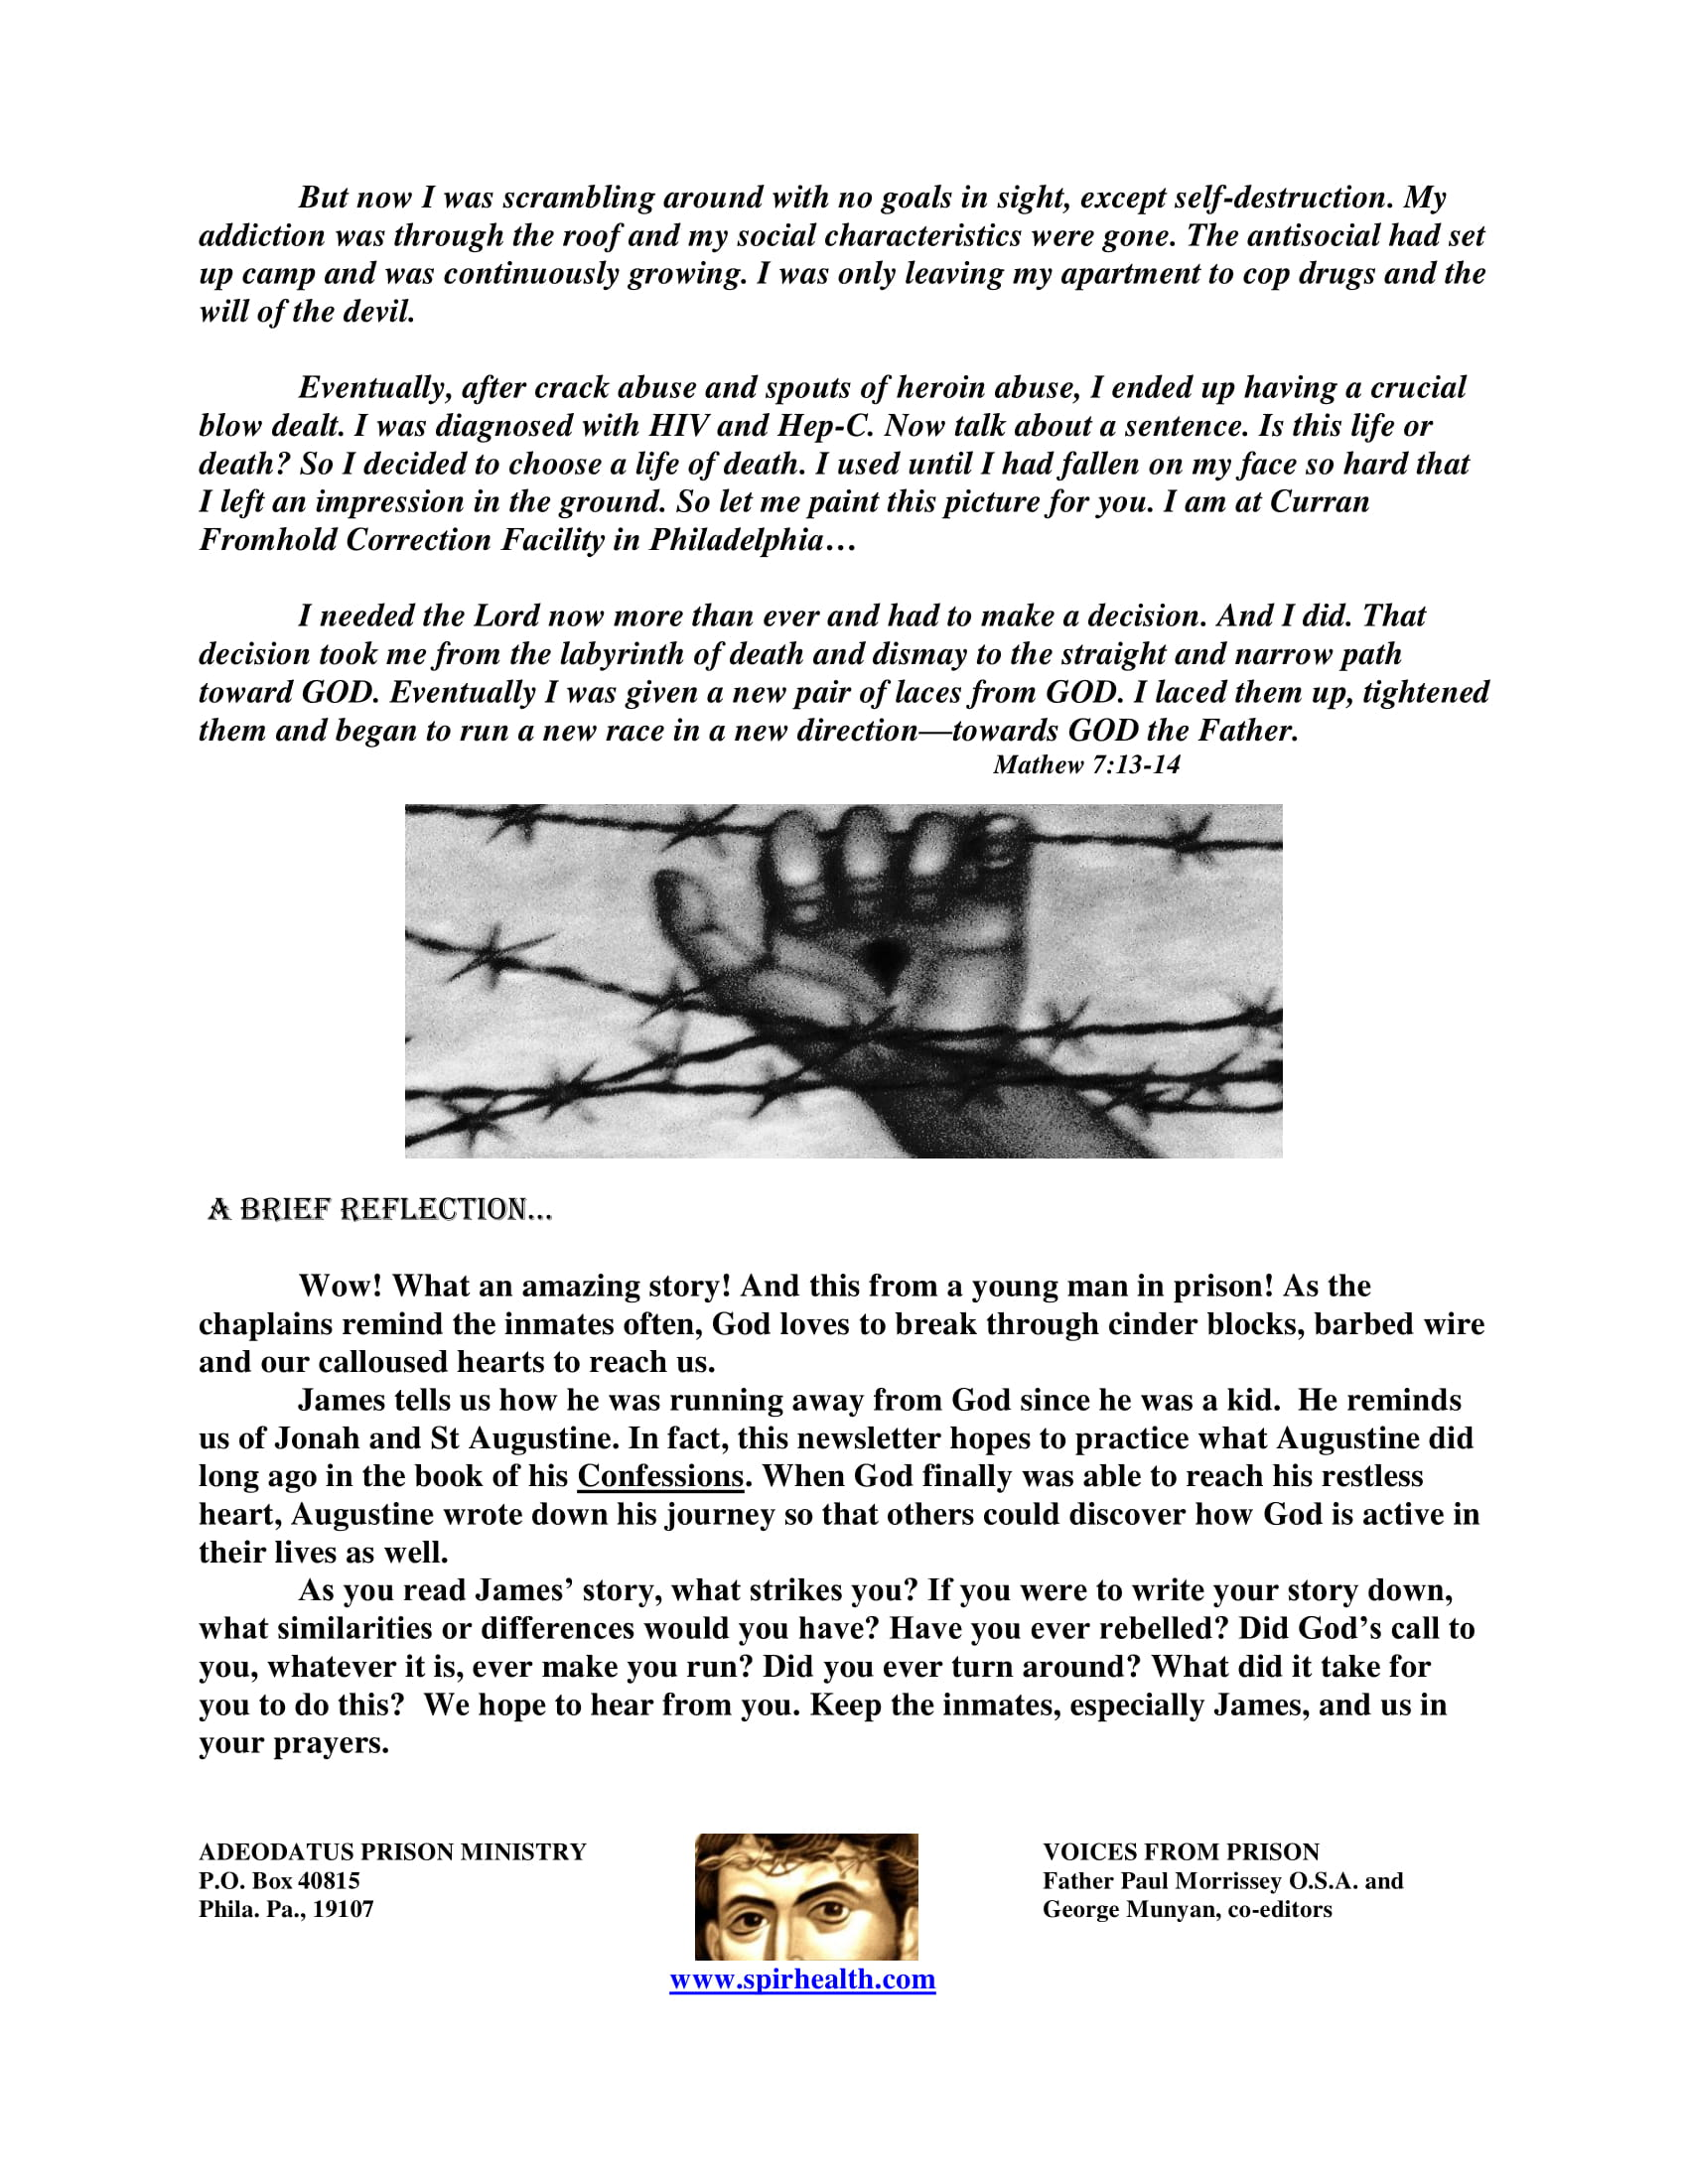 Voices From Prison 1-2.jpg